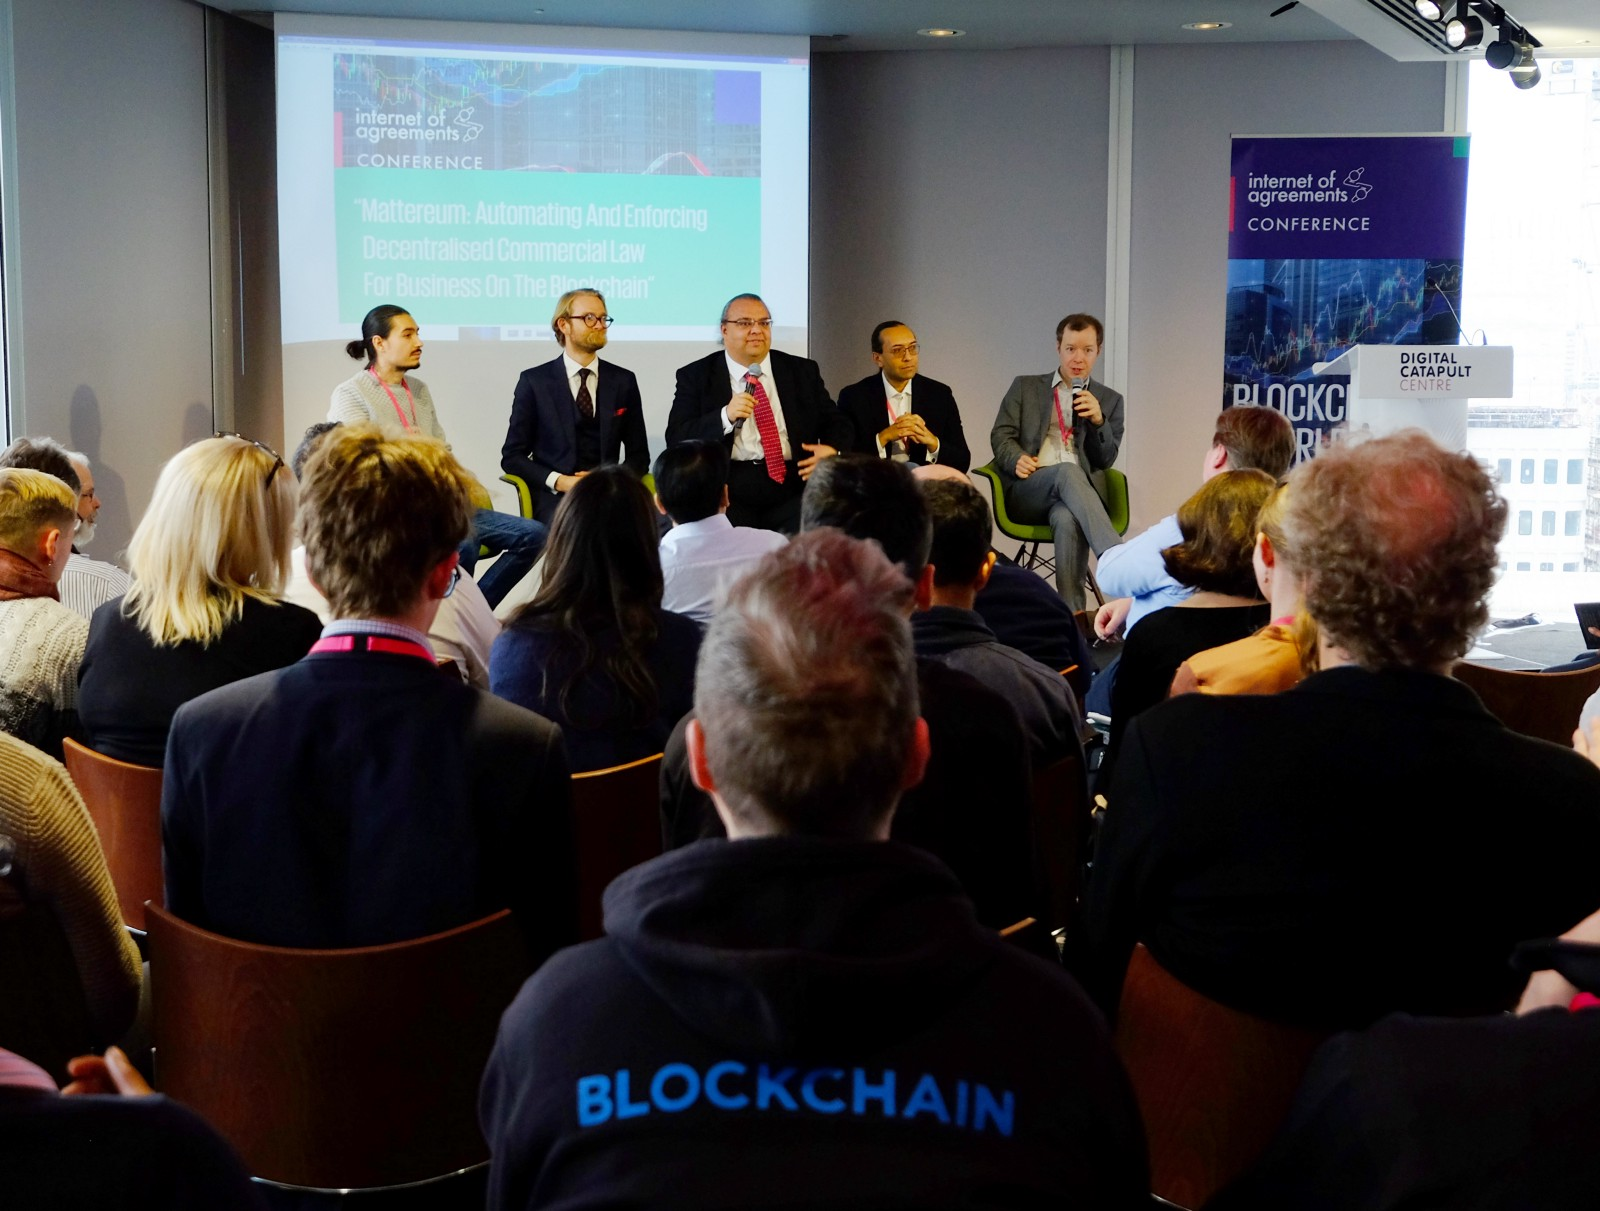 Mattereum Panel At The Internet Of Agreements Conference